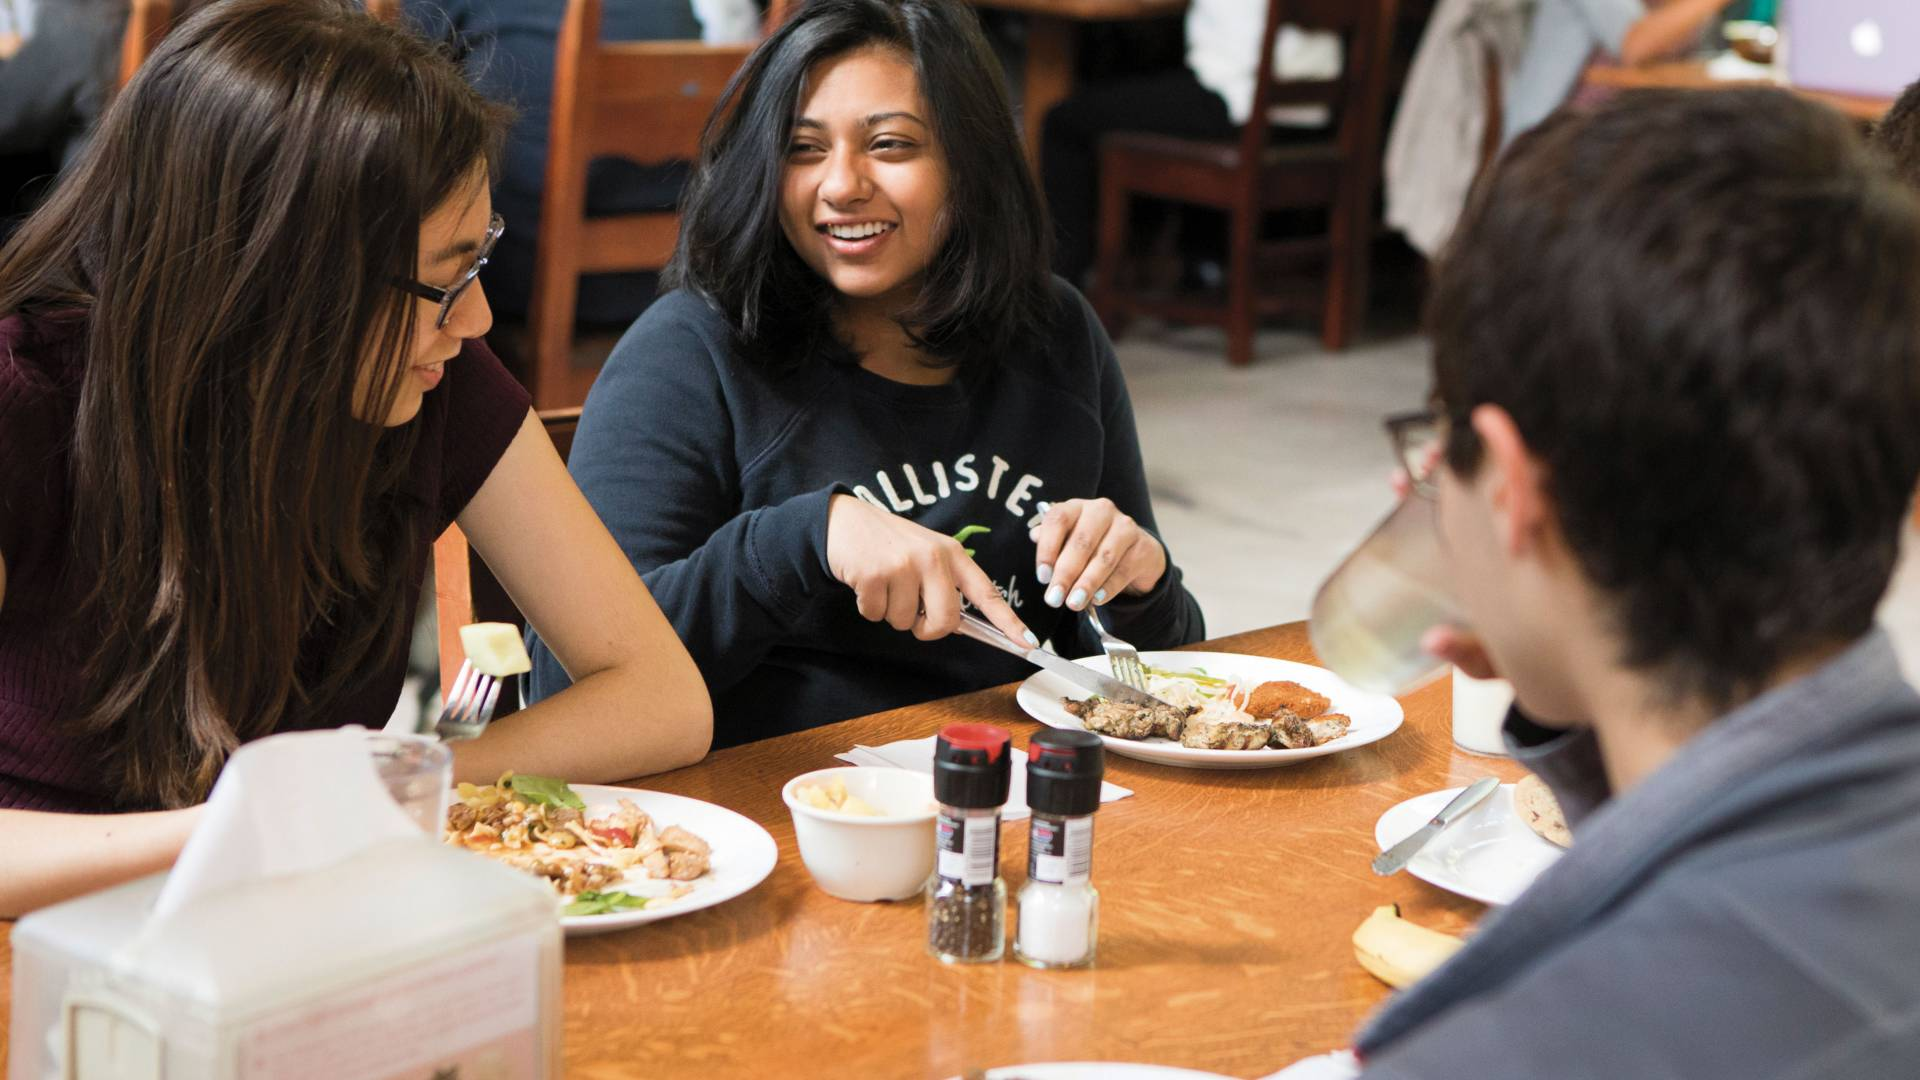 Binita Gupta eating with friends in dining hall